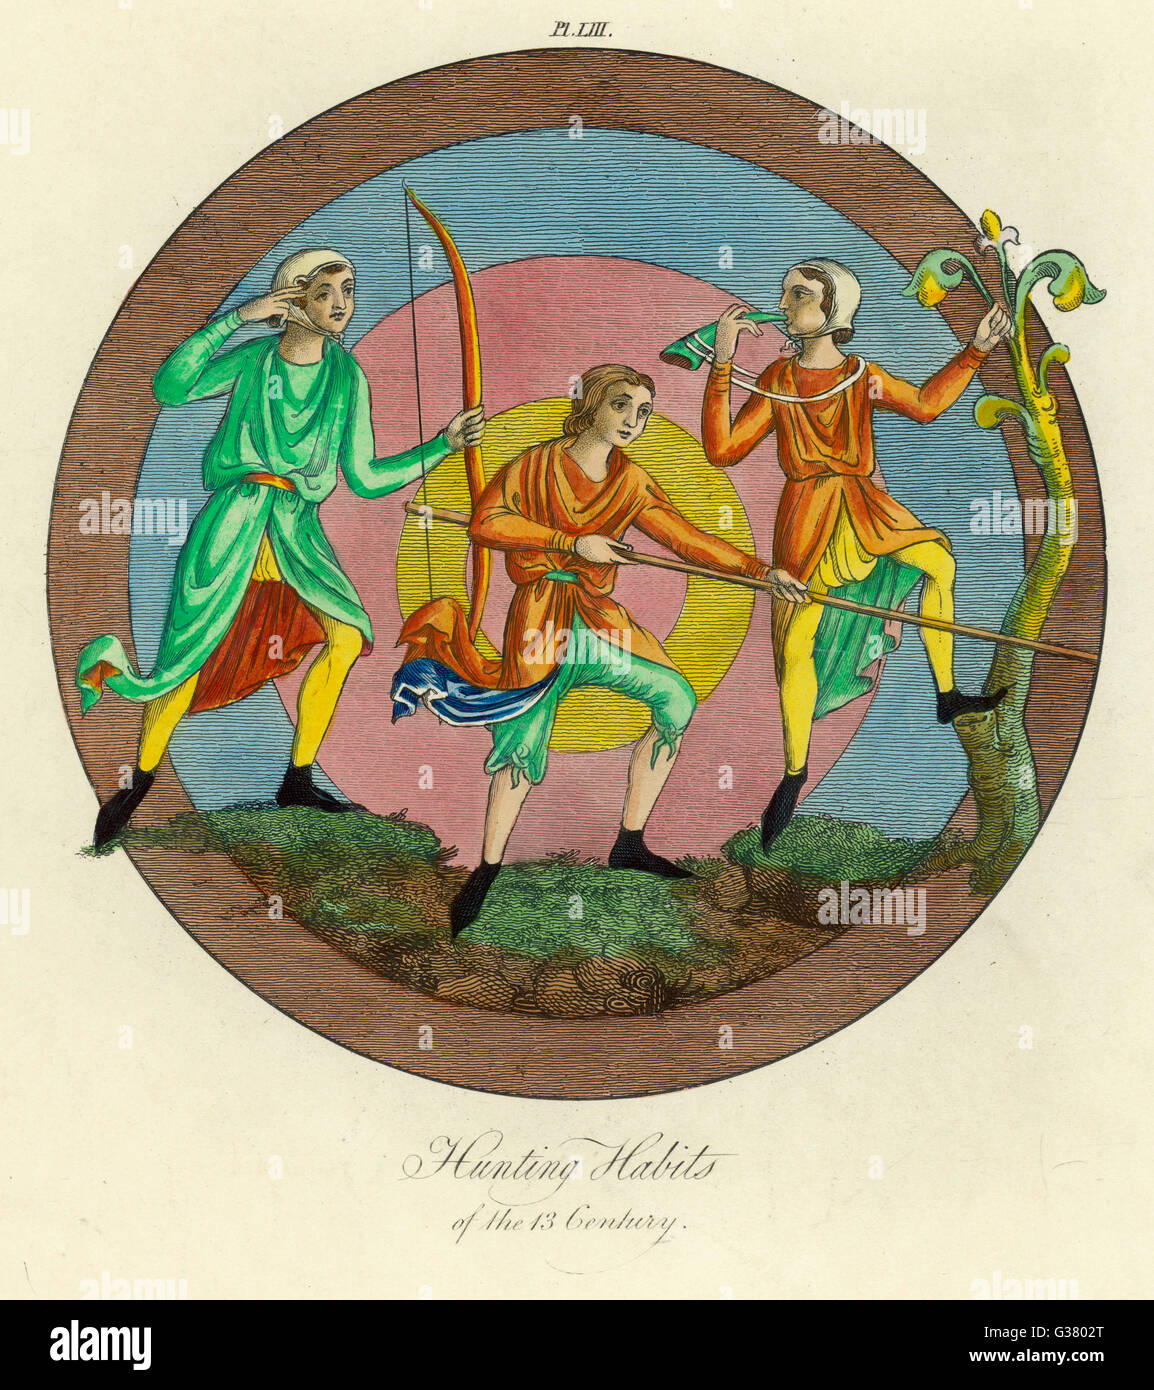 Hunting habits          Date: 13th century - Stock Image